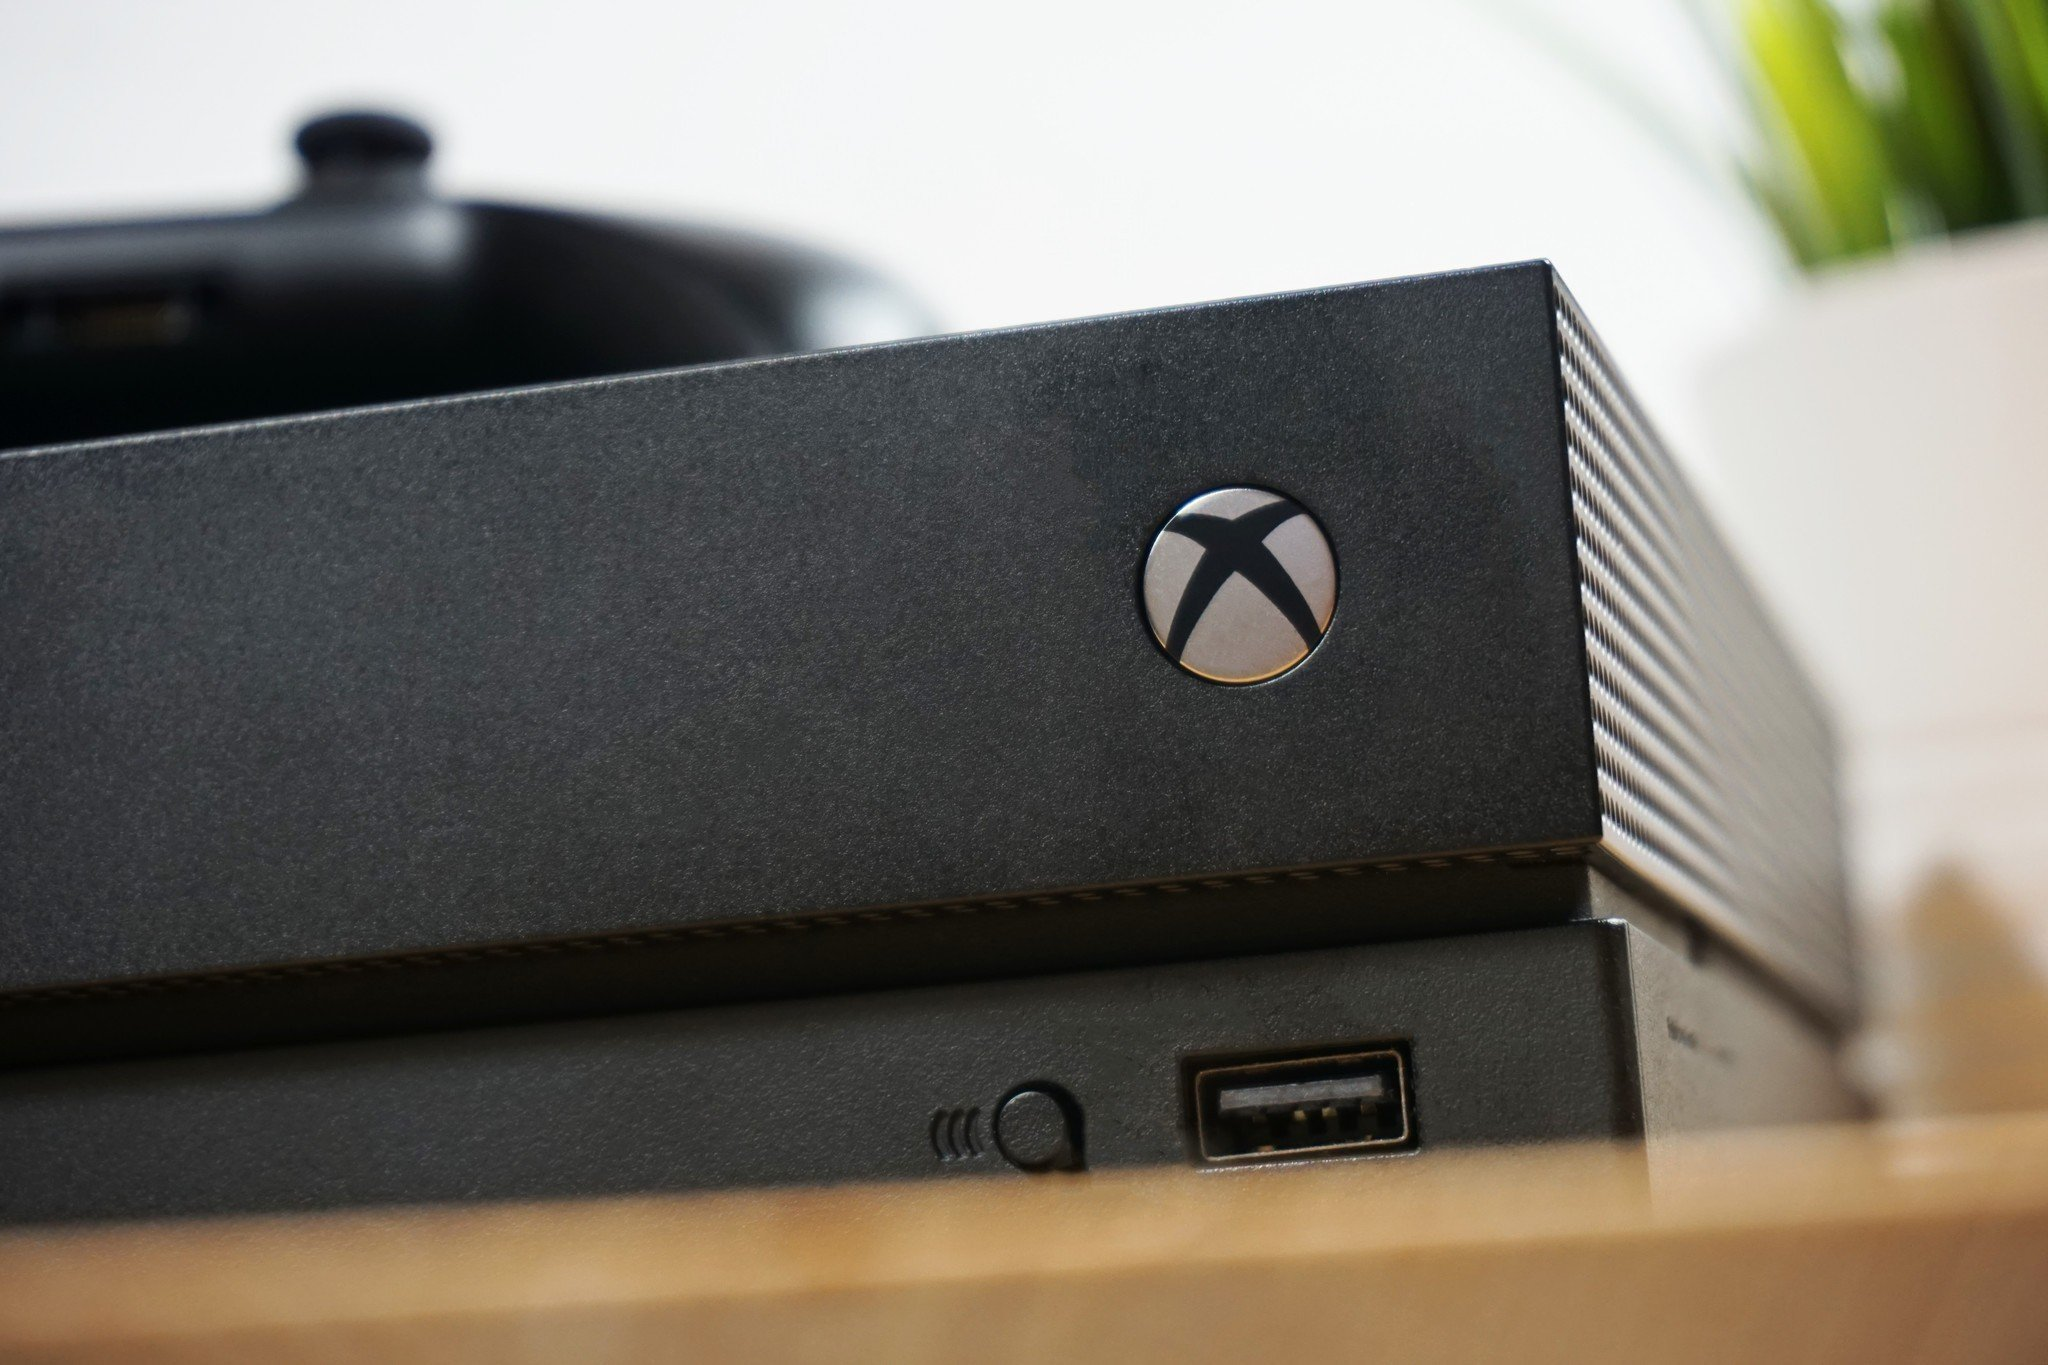 the xbox one cuts out the complexities of gaming with a seamless setup and gaming experience unbox it plug it in walk through a few steps of set up  [ 1600 x 1066 Pixel ]